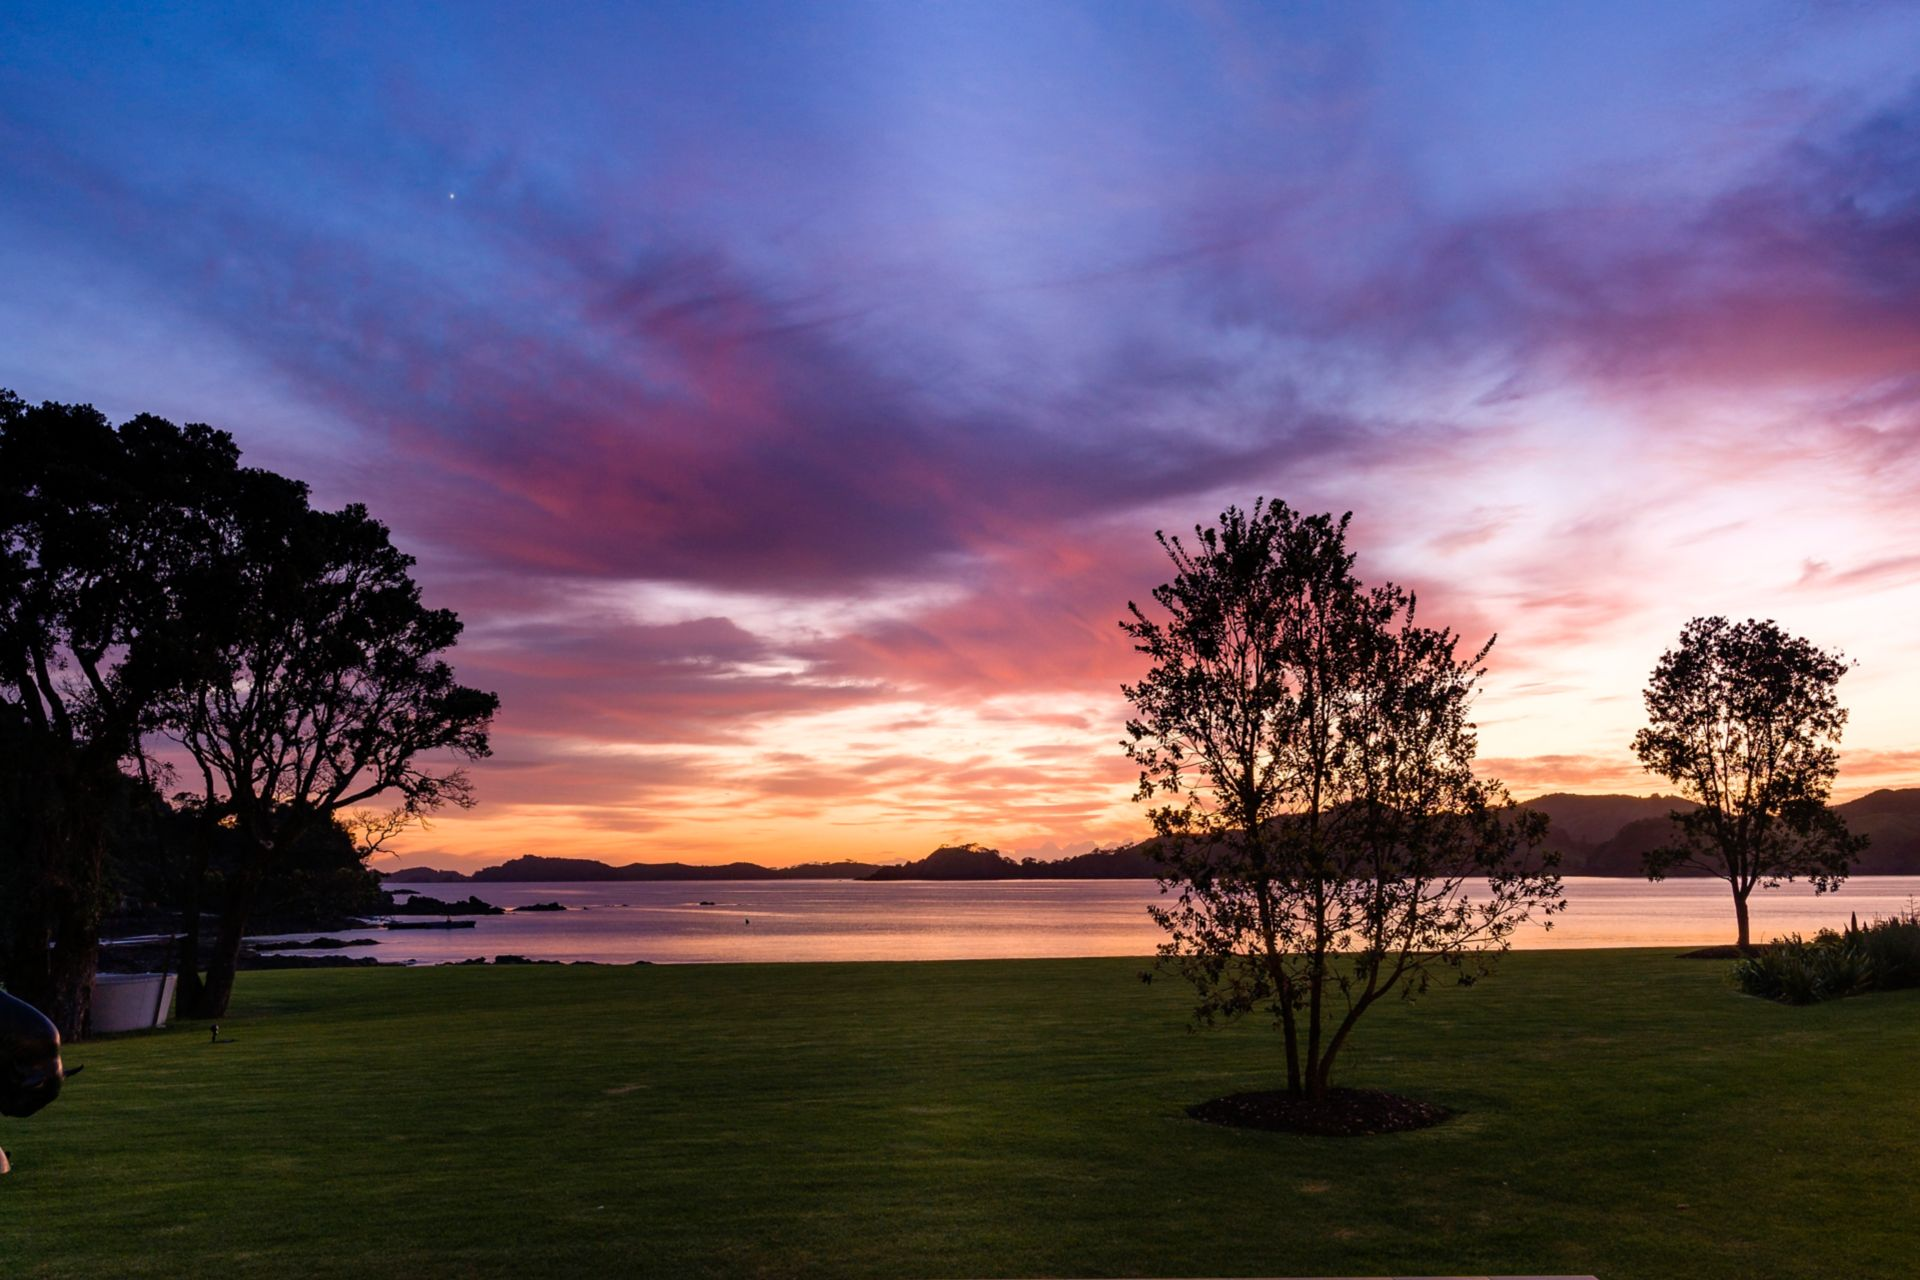 Sunset view from luxury lodge in New Zealand